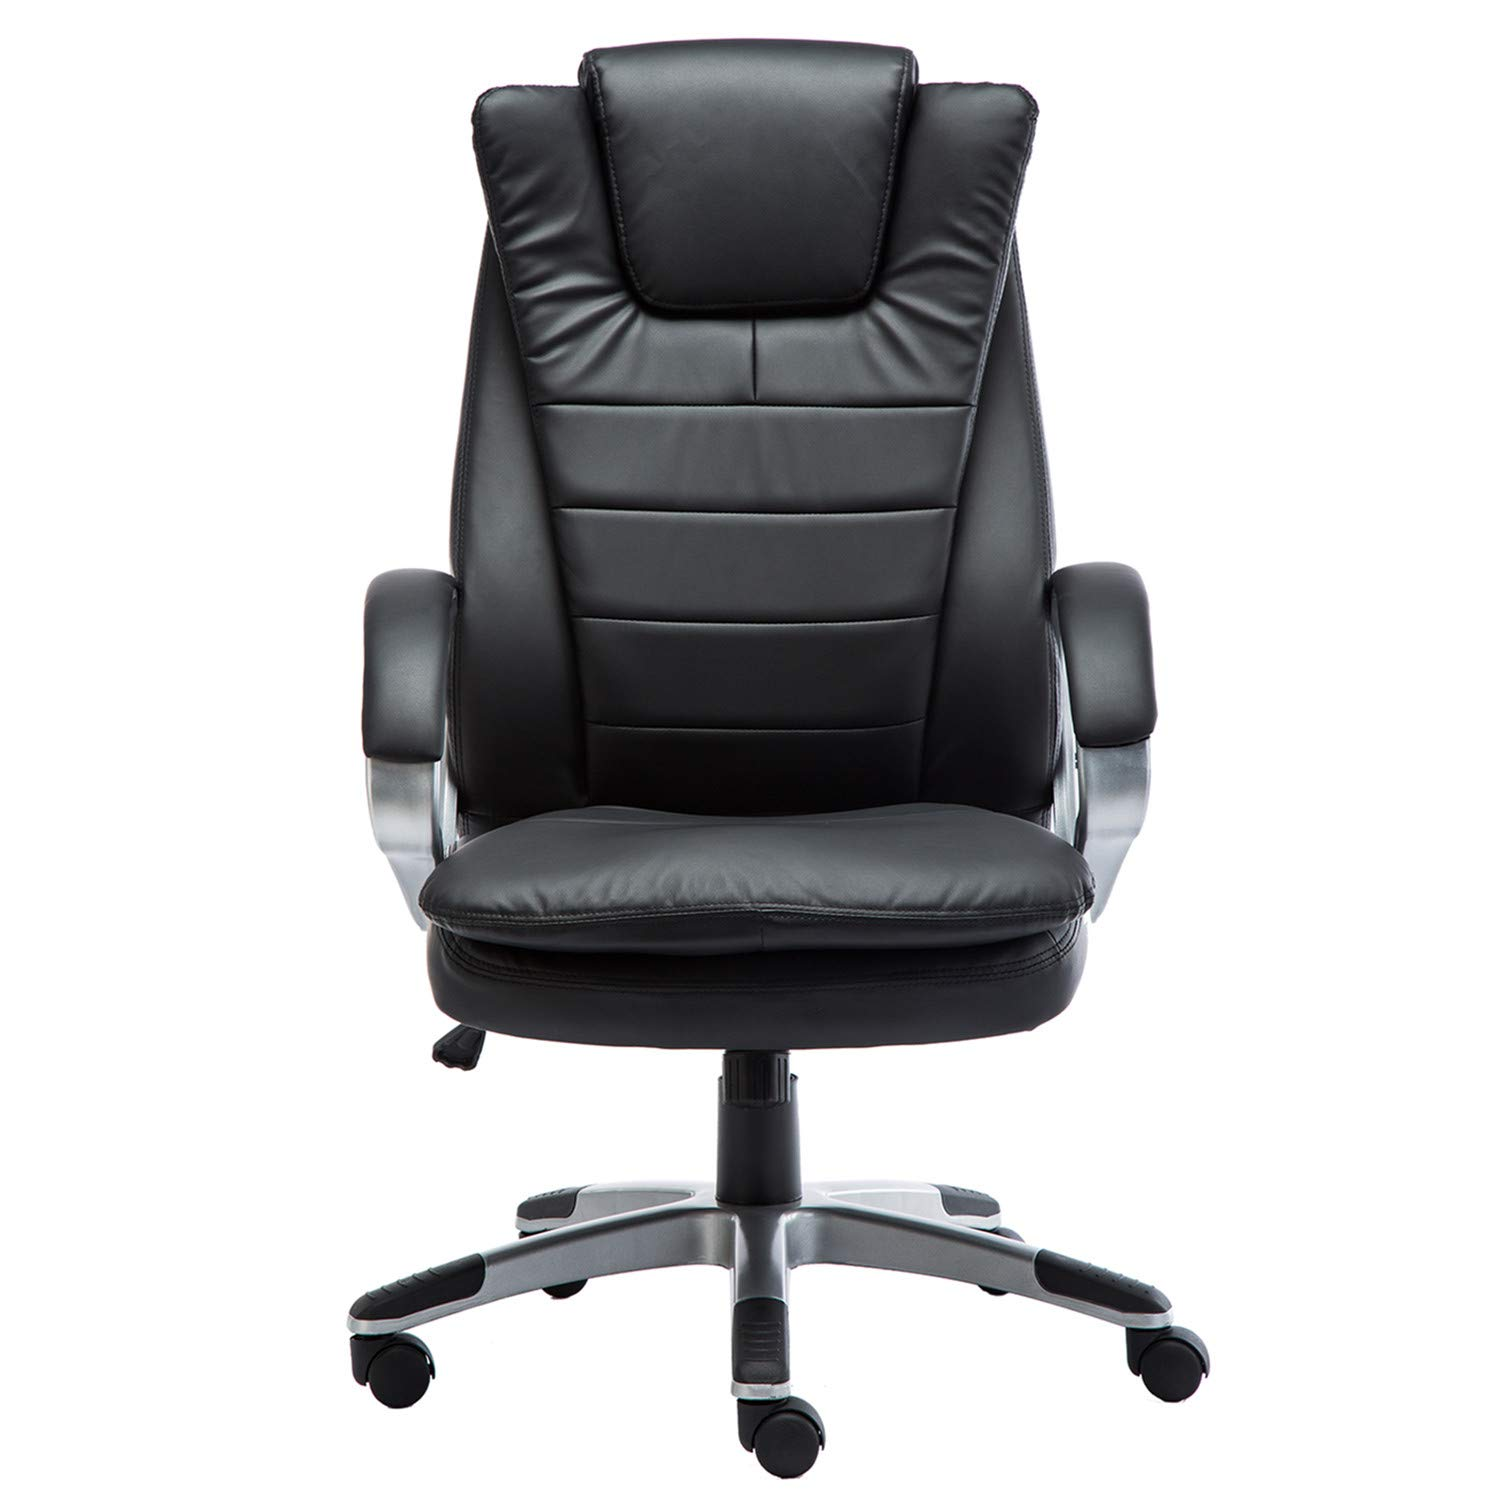 GreenForest Office Chair High Back Desk Chair PU Leather Ergonomic Computer Chair with Armrest and Lumbar Support, Black